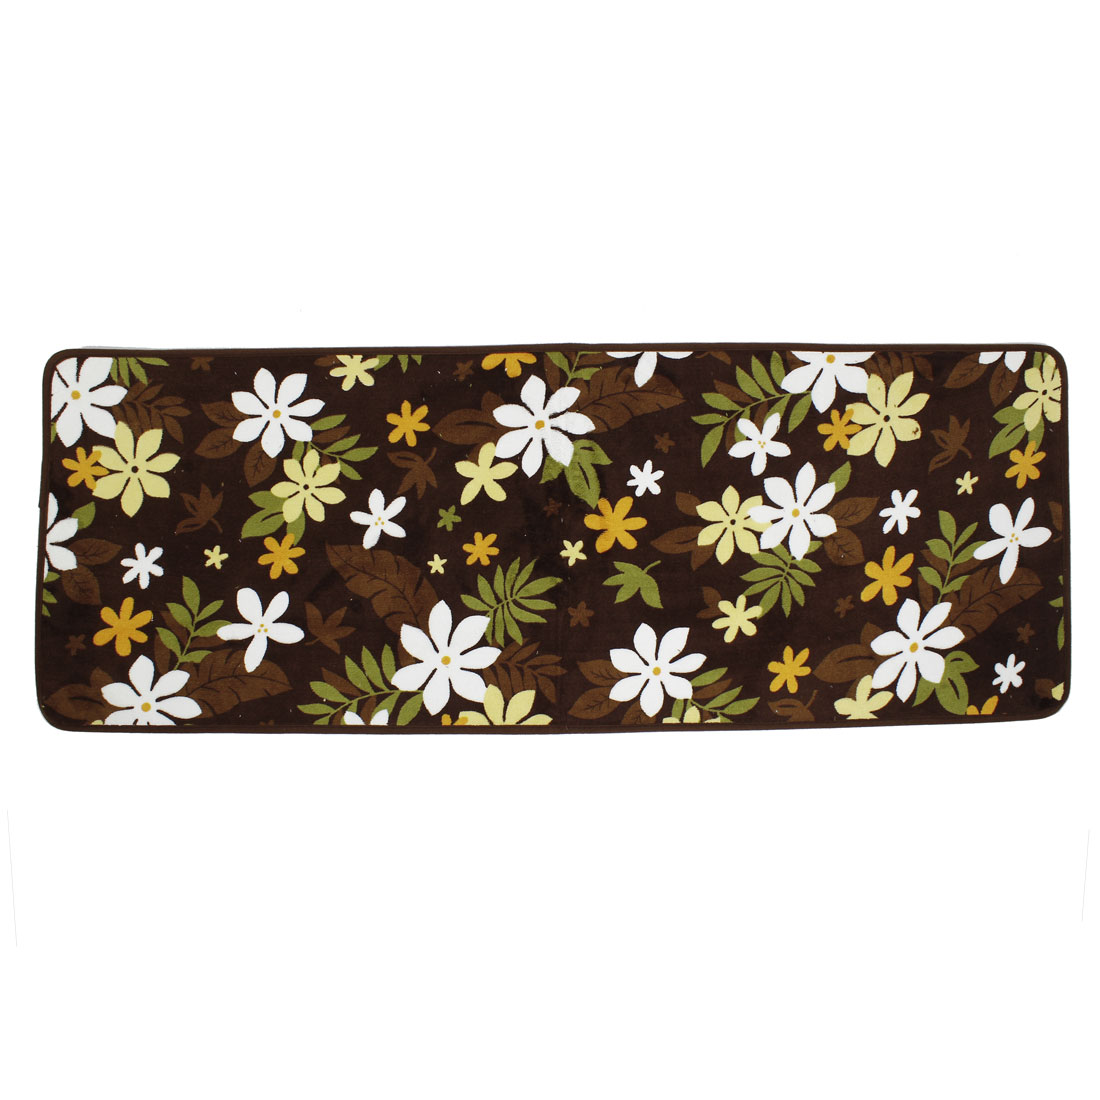 Coffee Color Floral Leaves Print Kitchen Floor Mat Area